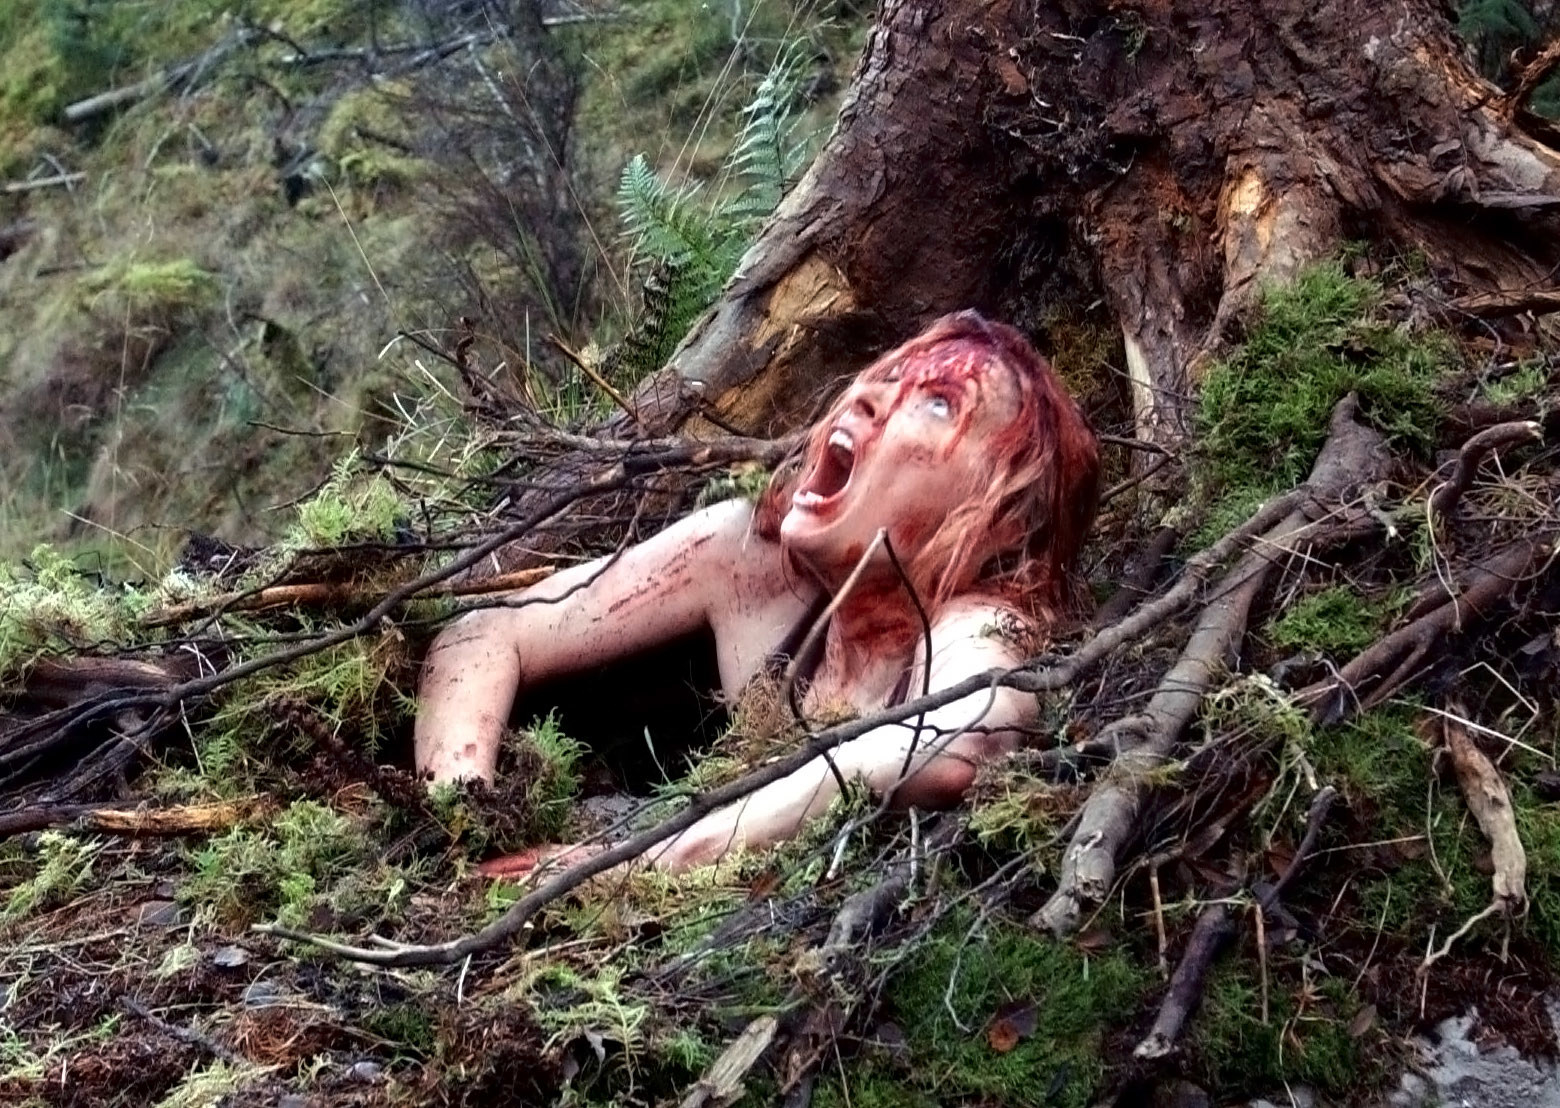 a girl screaming and covered in blood while trying to escape from a cave but being unable to